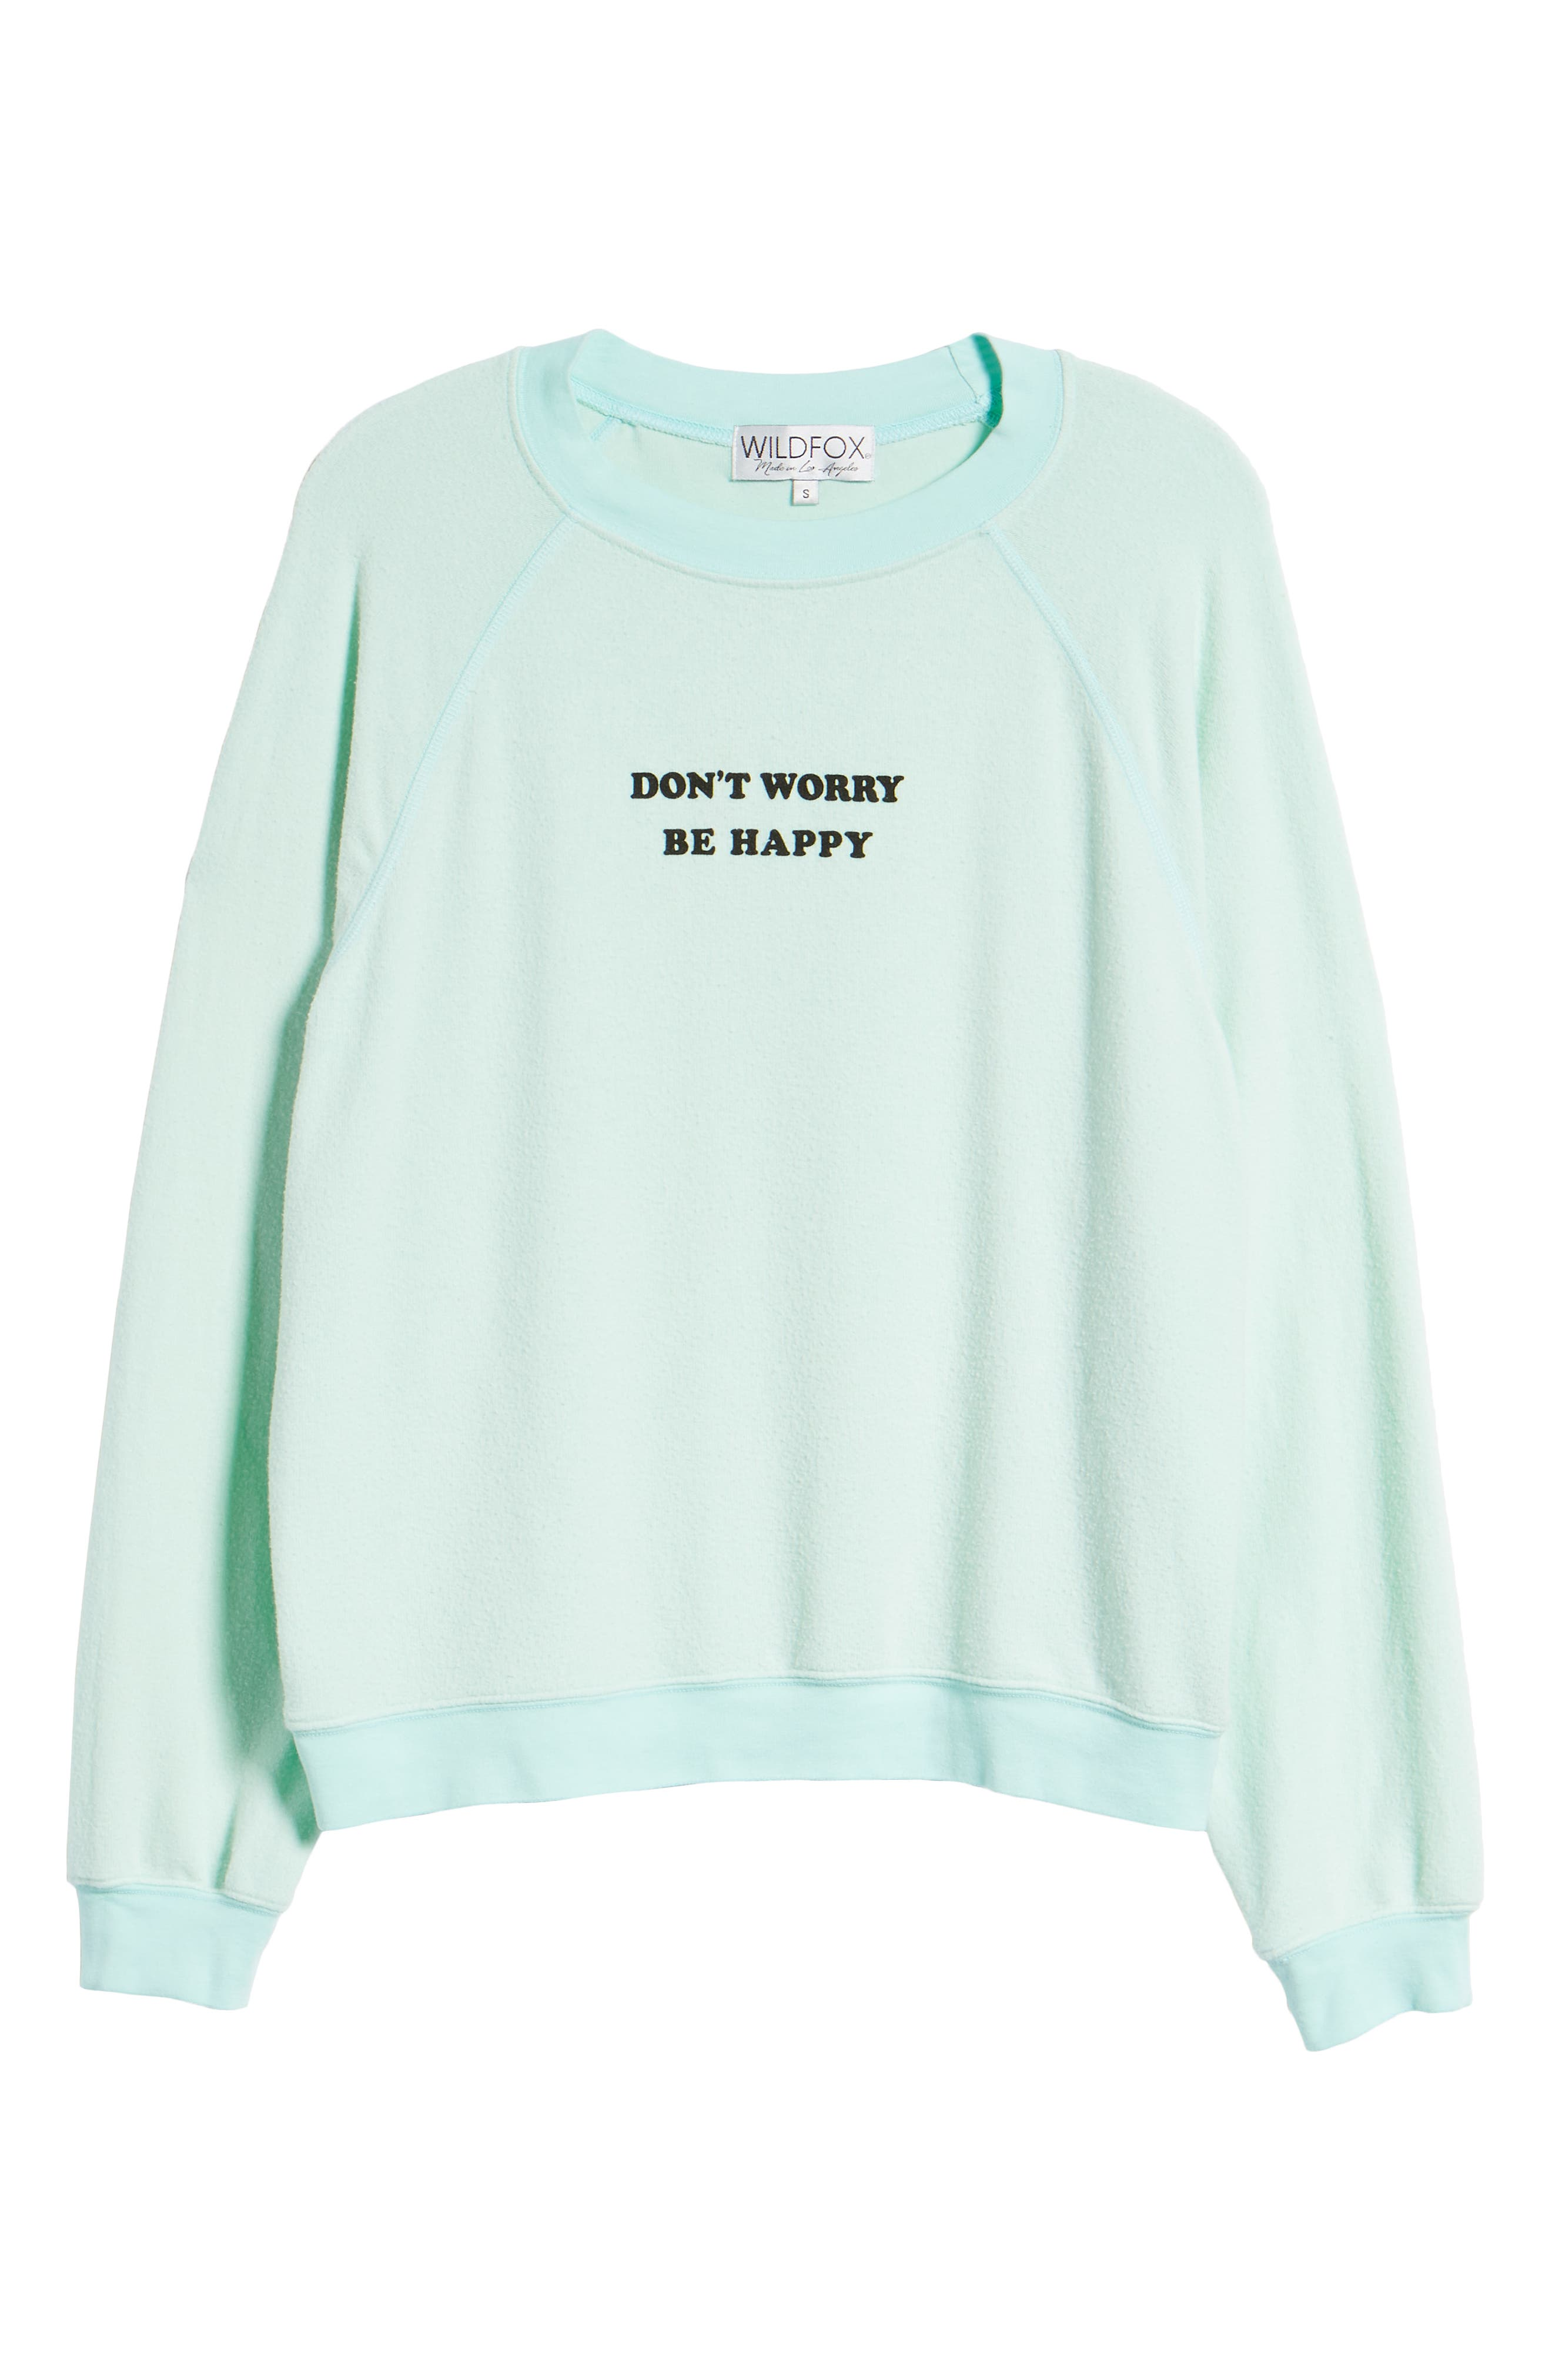 Be Happy Sweatshirt,                             Alternate thumbnail 6, color,                             440